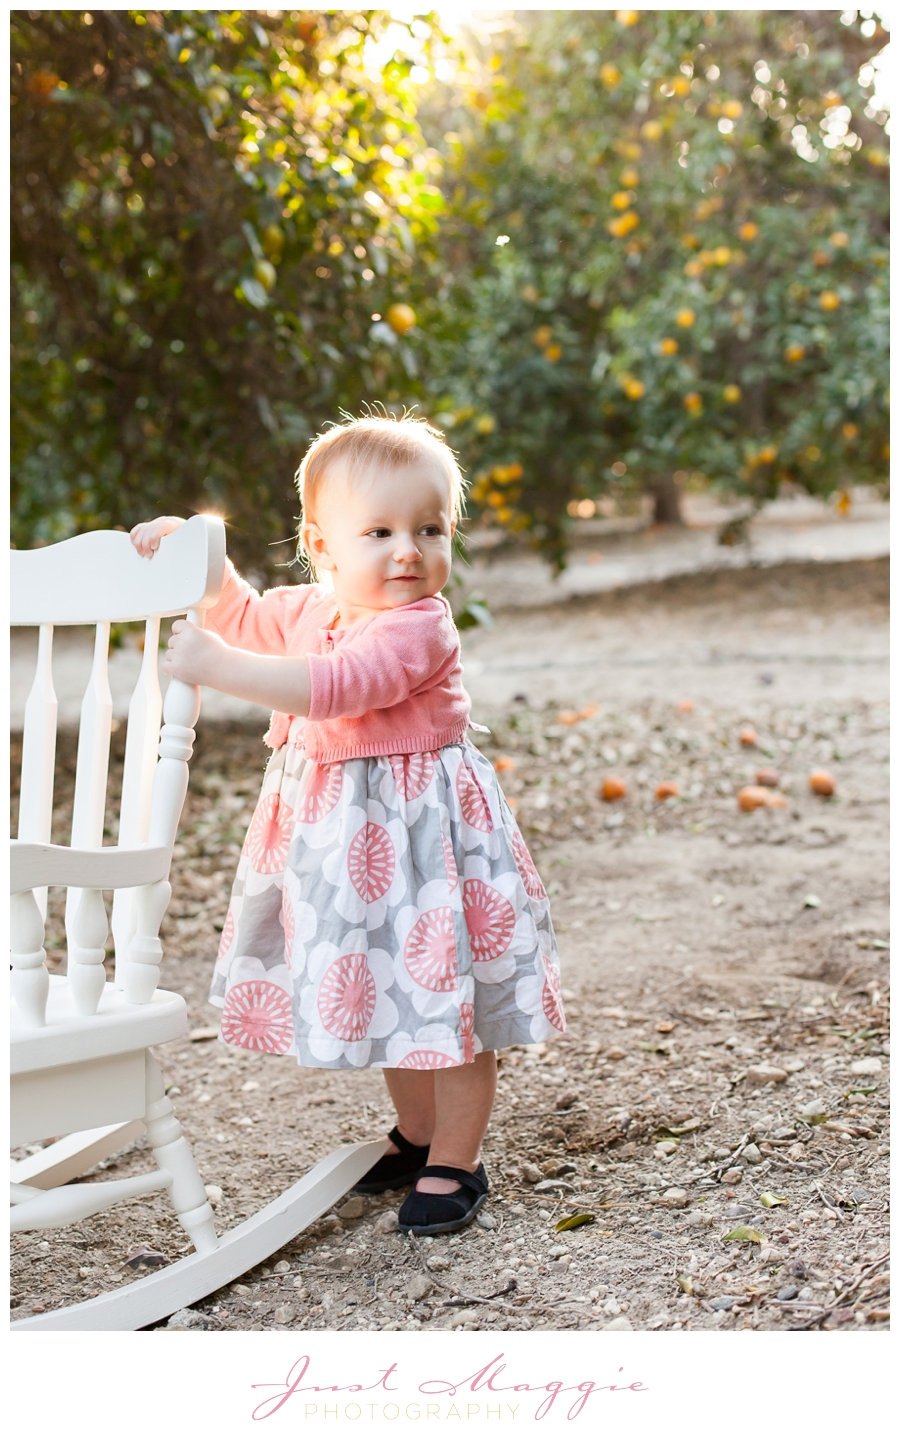 One Year Old Portraits In Orange Groves By Just Maggie Photography